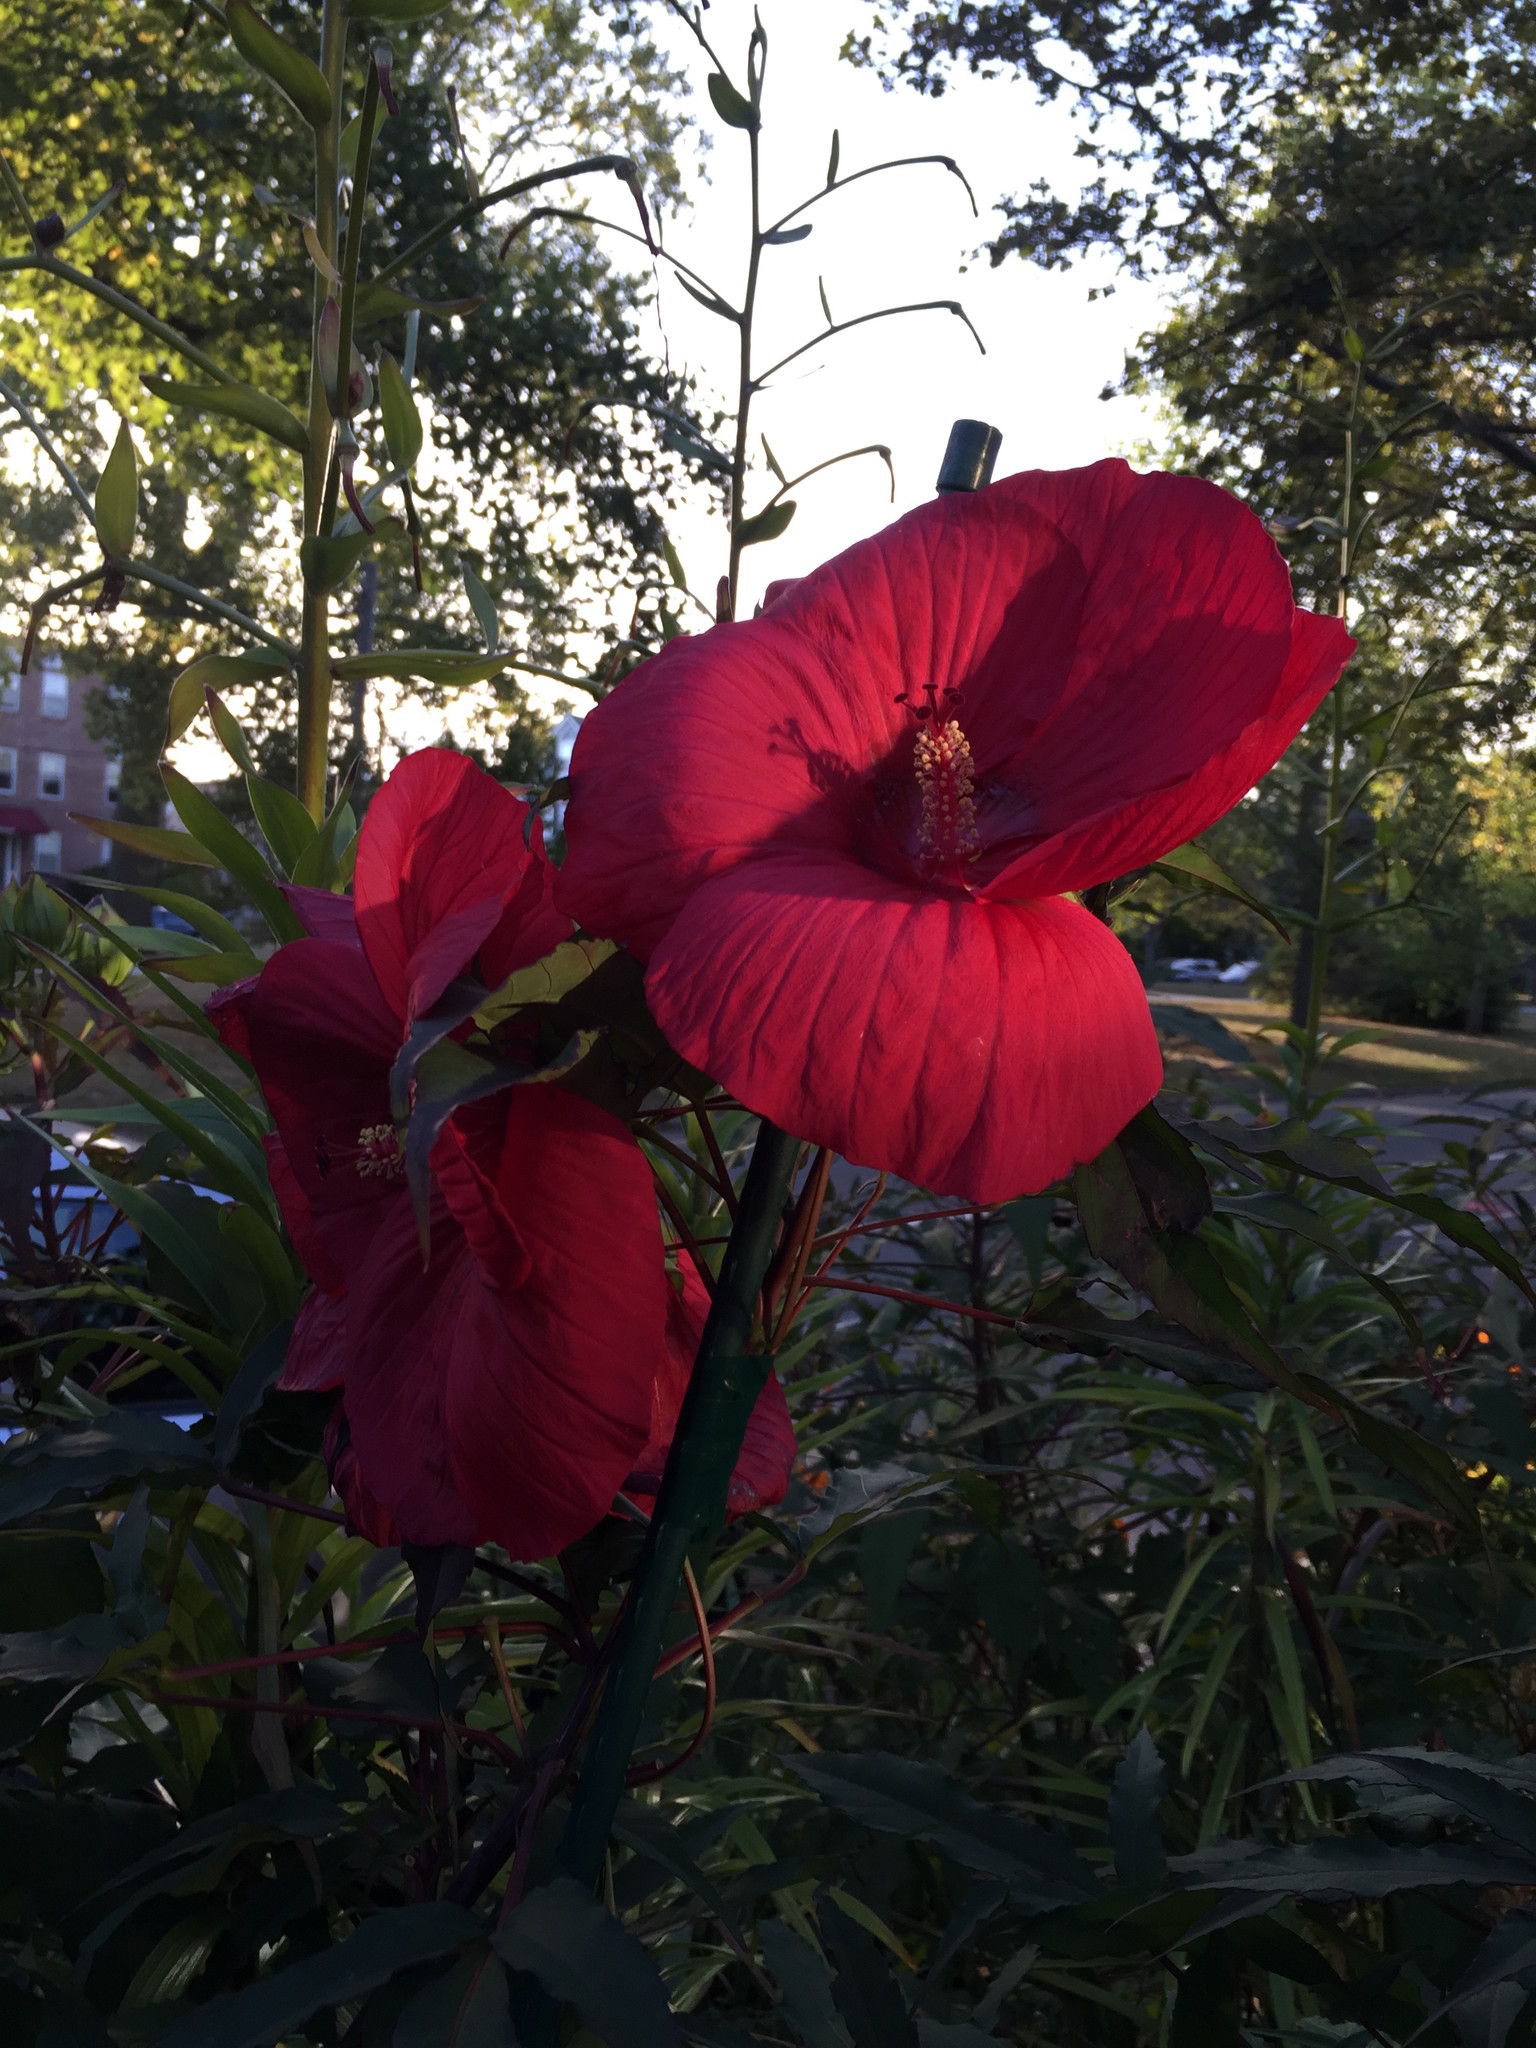 Camera tests battle of the 47 inch iphones 6 6s and 7 imore this photo of a red flower struck by direct sunlight showcases both the 6s and 7 quite nicely all three shot the flower at 1120th second shutter speed izmirmasajfo